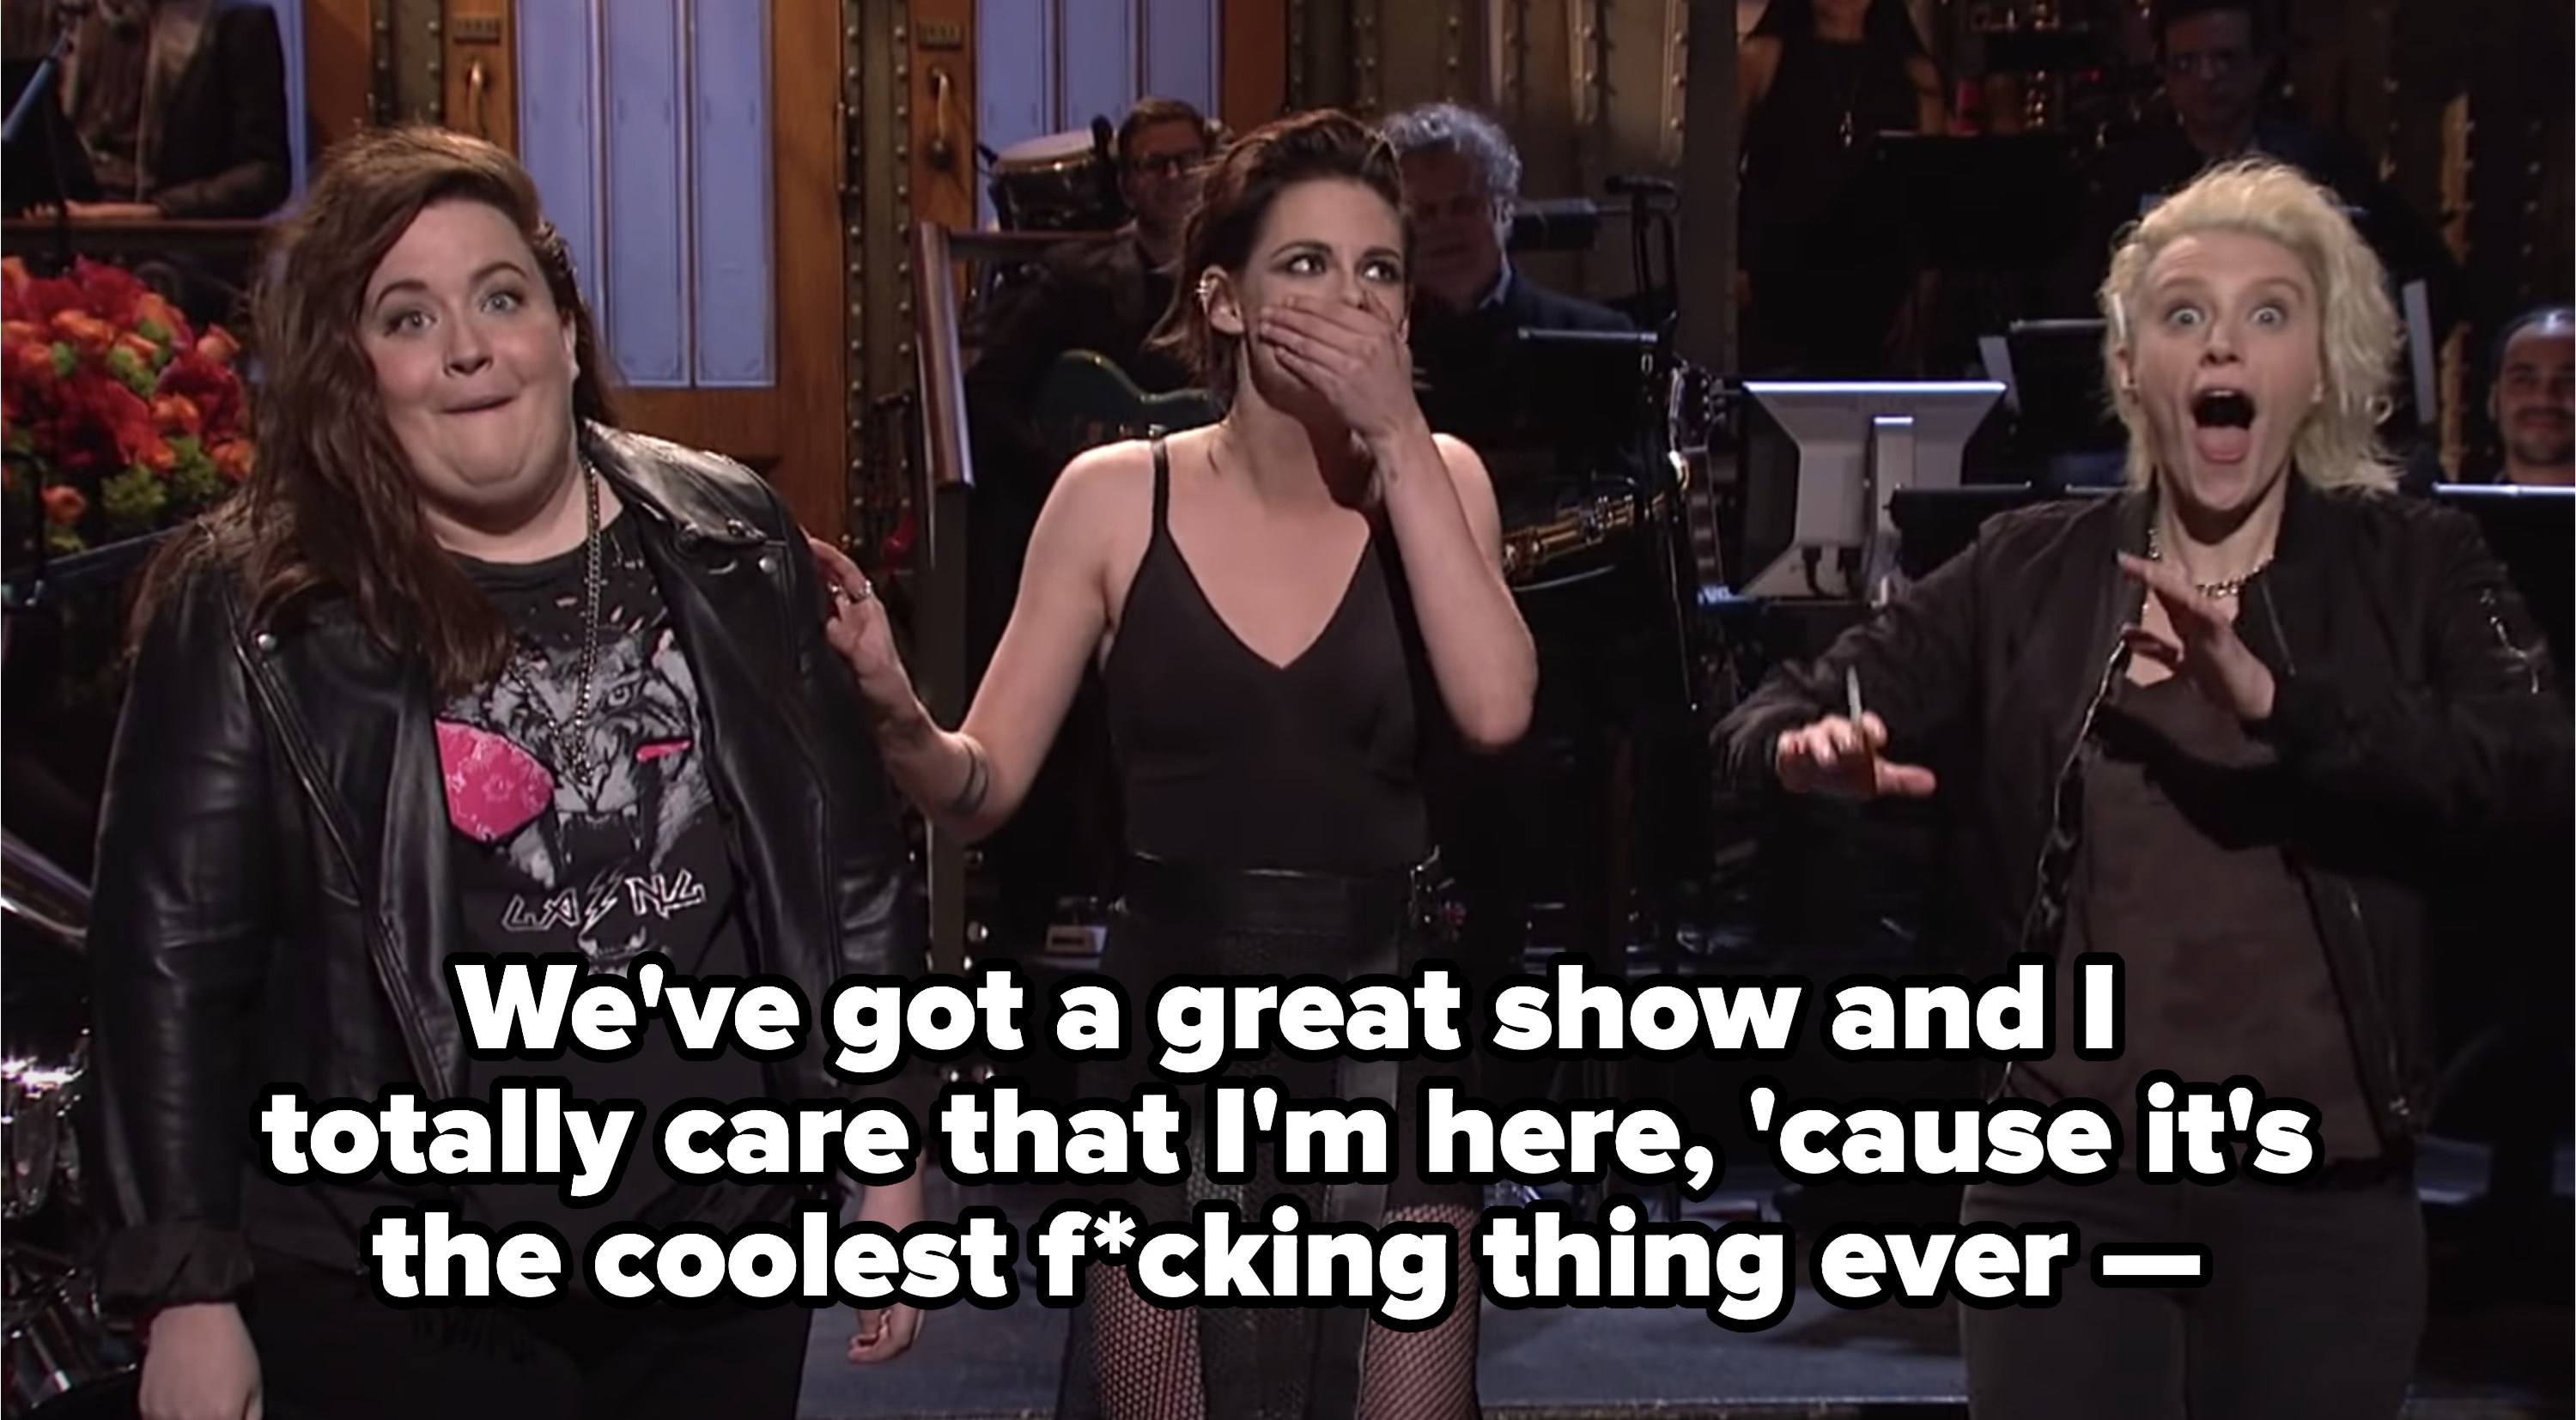 """Kristen: """"We've got a great show and I totally care that I'm here, 'cause it's the coolest f*cking thing ever —"""""""